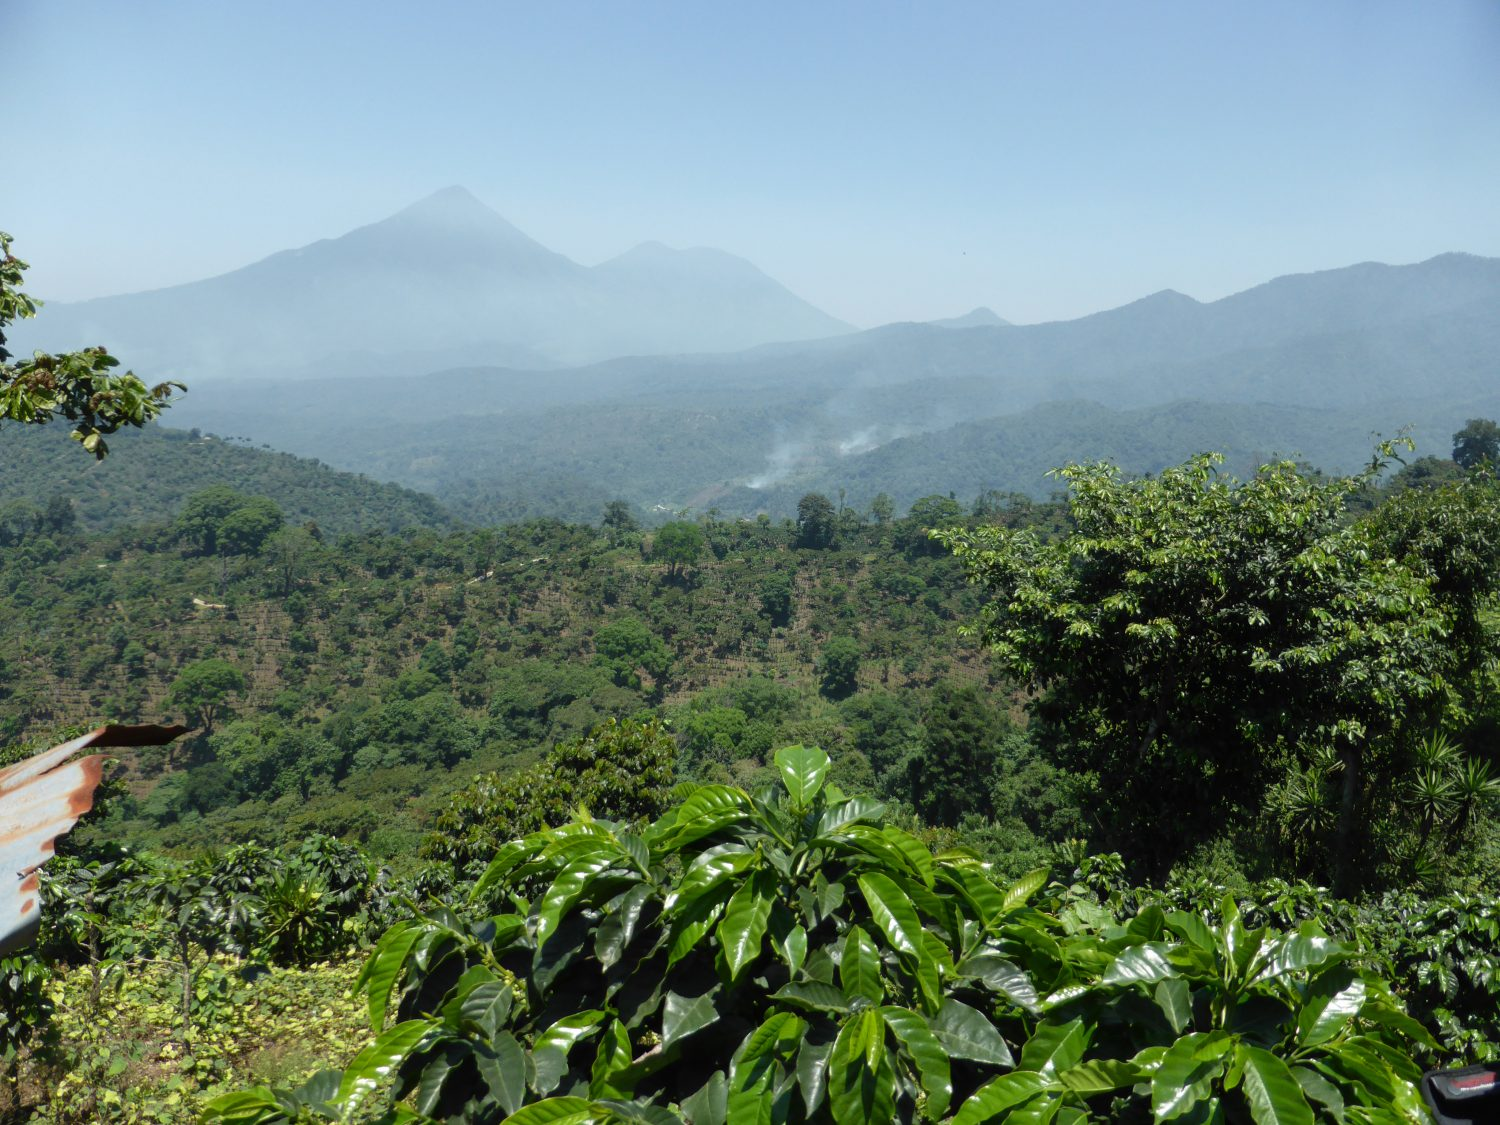 Naturally grown Guatemalan coffee trees planted across the landscape with a view of the distant volcanic peaks